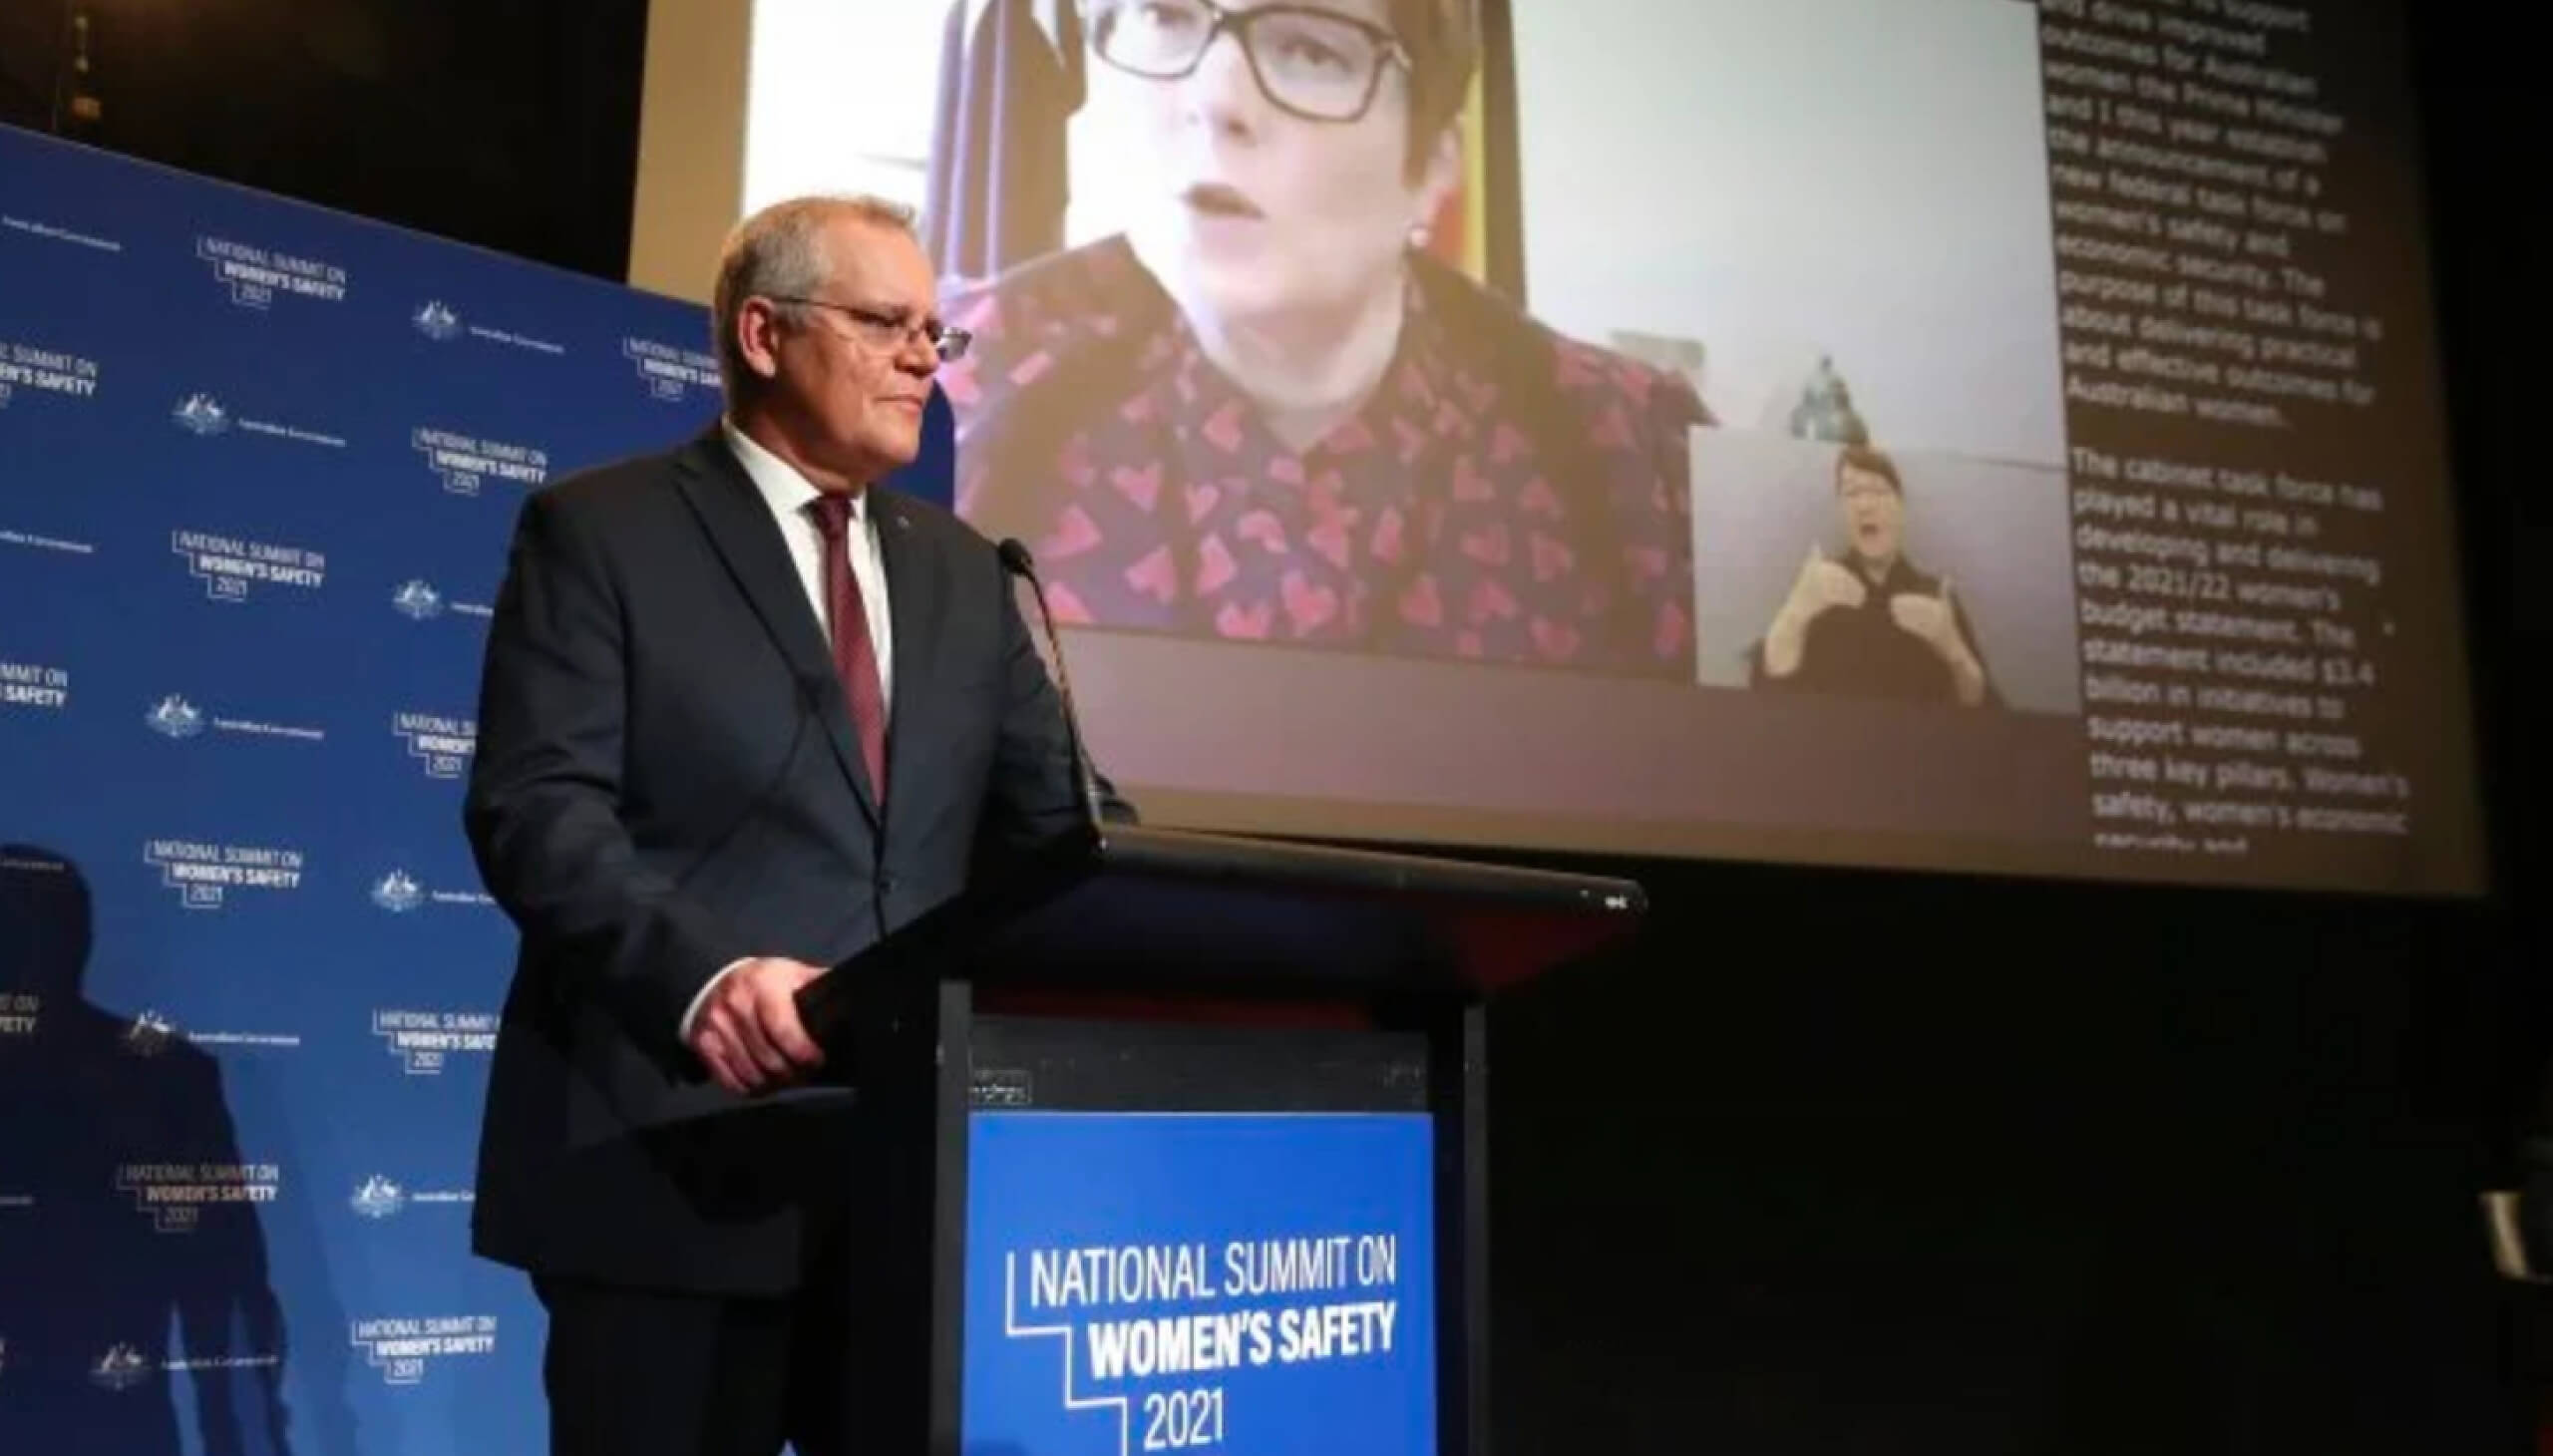 Prime Minister Scott Morrison speaking at the National Summit on Women's Safety